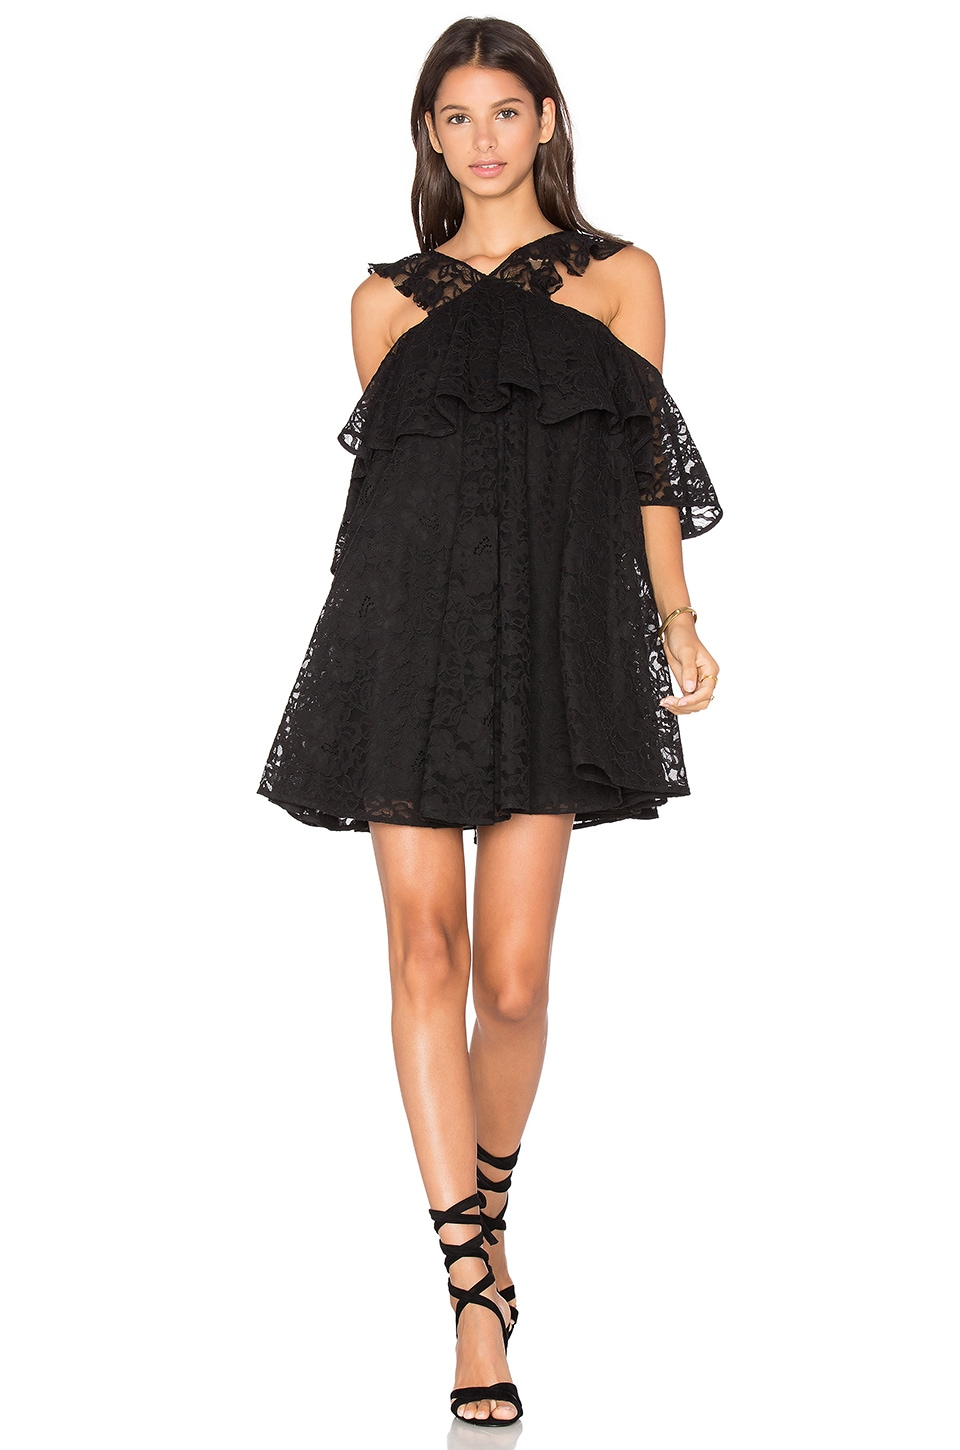 Cynthia Rowley Lace Cold Shoulder Mini Dress in Black